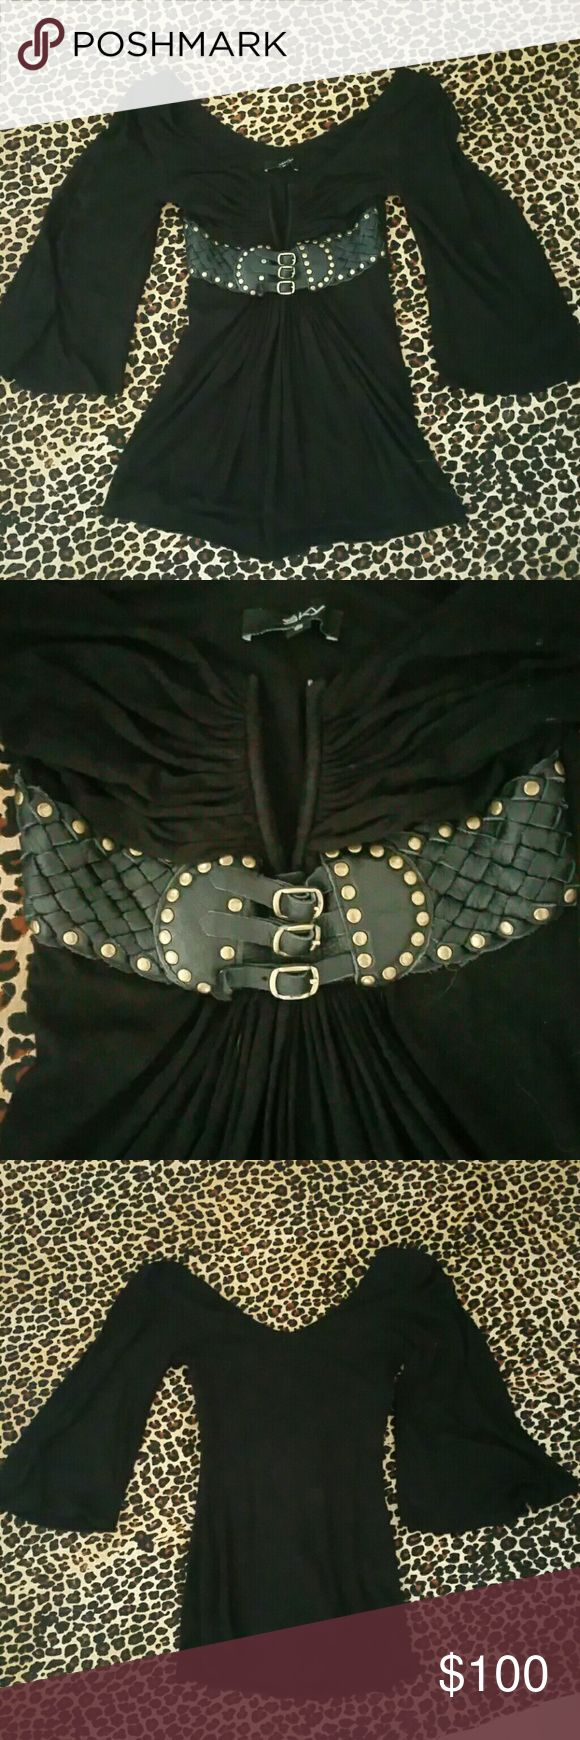 Sky Black Leather Bodice Off Shoulder Top Can be worn on or off the shoulders.  Gorgeous leather and brass studded bodice (see 2nd photo).  3/4 length flutter sleeves.  Gorgeous material, stretch and draping Sky is known for.  Worn once. Sky Tops